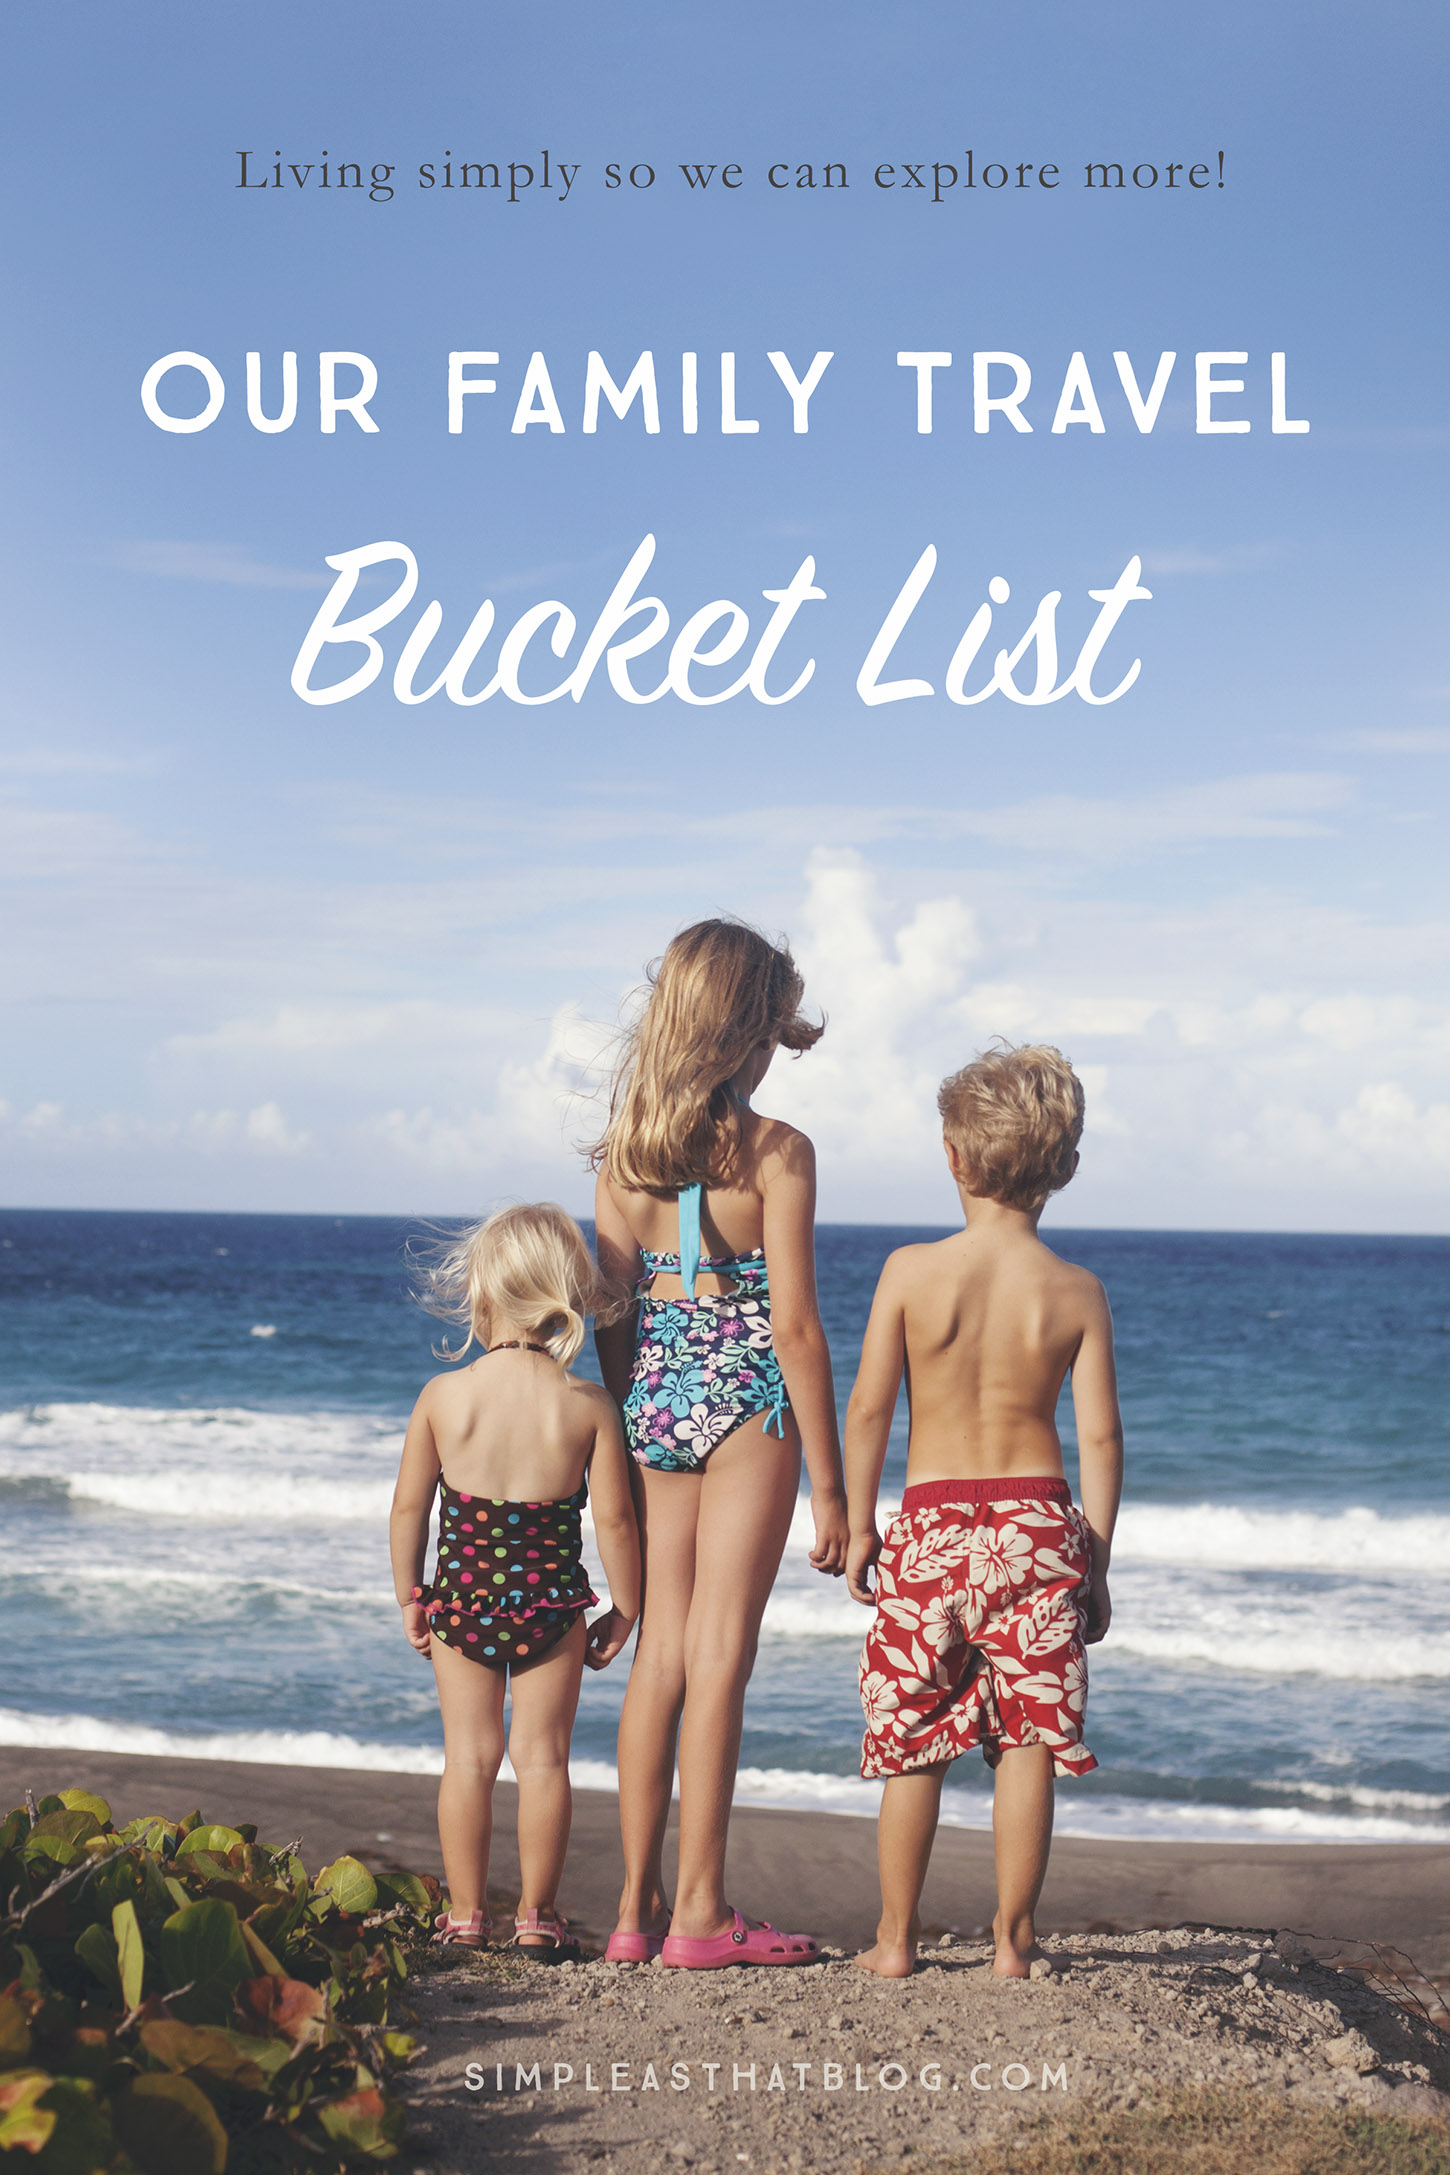 Travel. Each new destination allows you to connect with your family, the majesty of nature, and the novelty of a different culture. Today I'm sharing the top 6 destinations on our family's travel bucket list—and I'd love to hear yours, too!